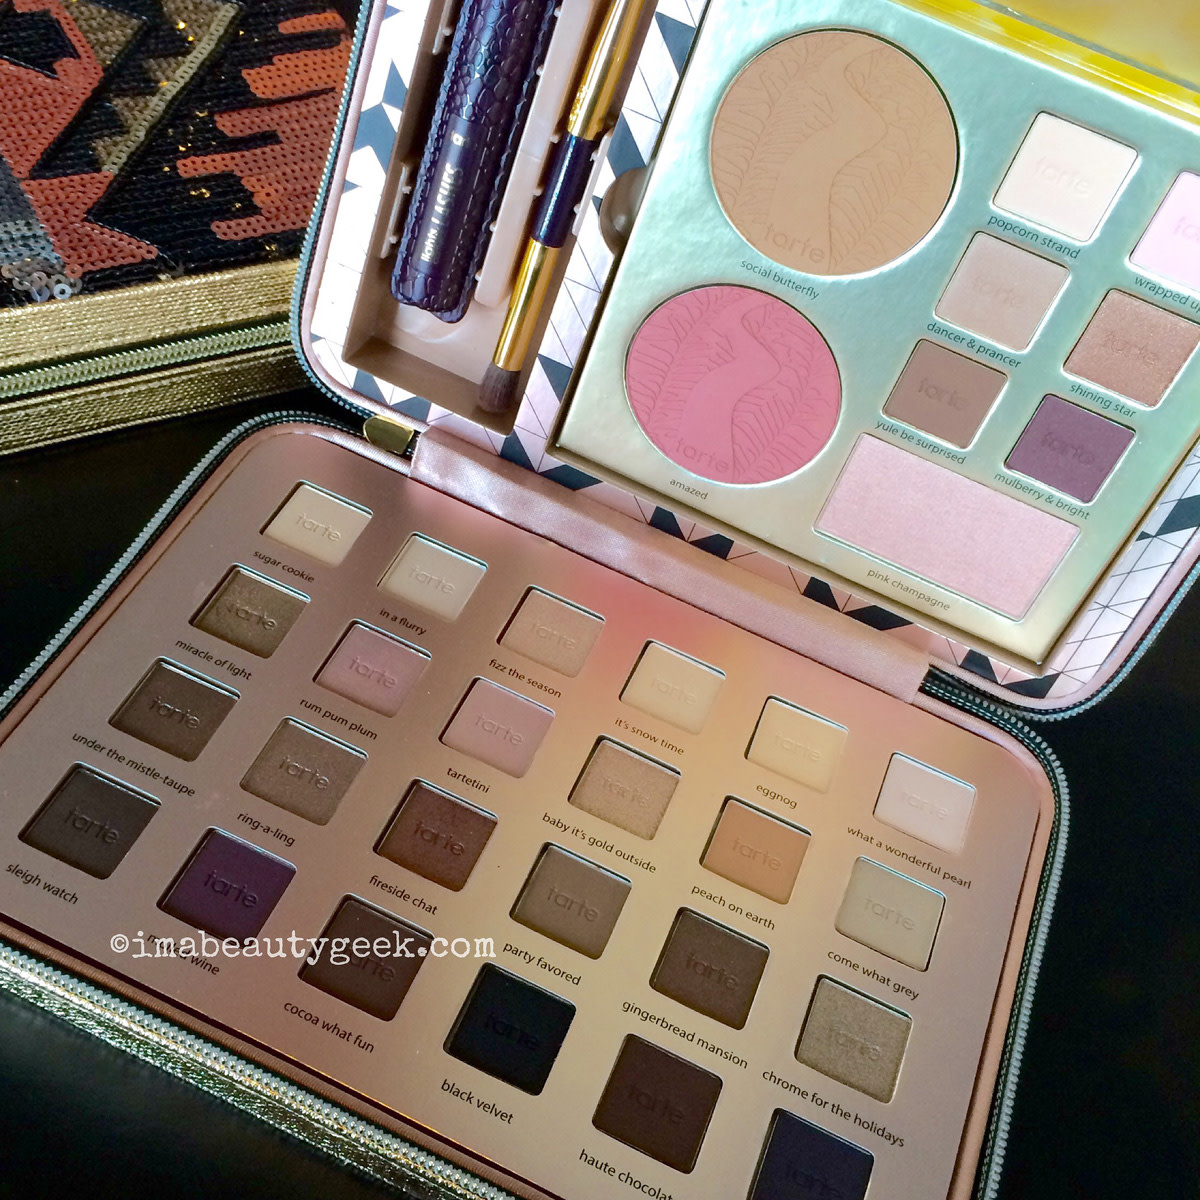 Tarte holiday 2015 Light of the Party gift set